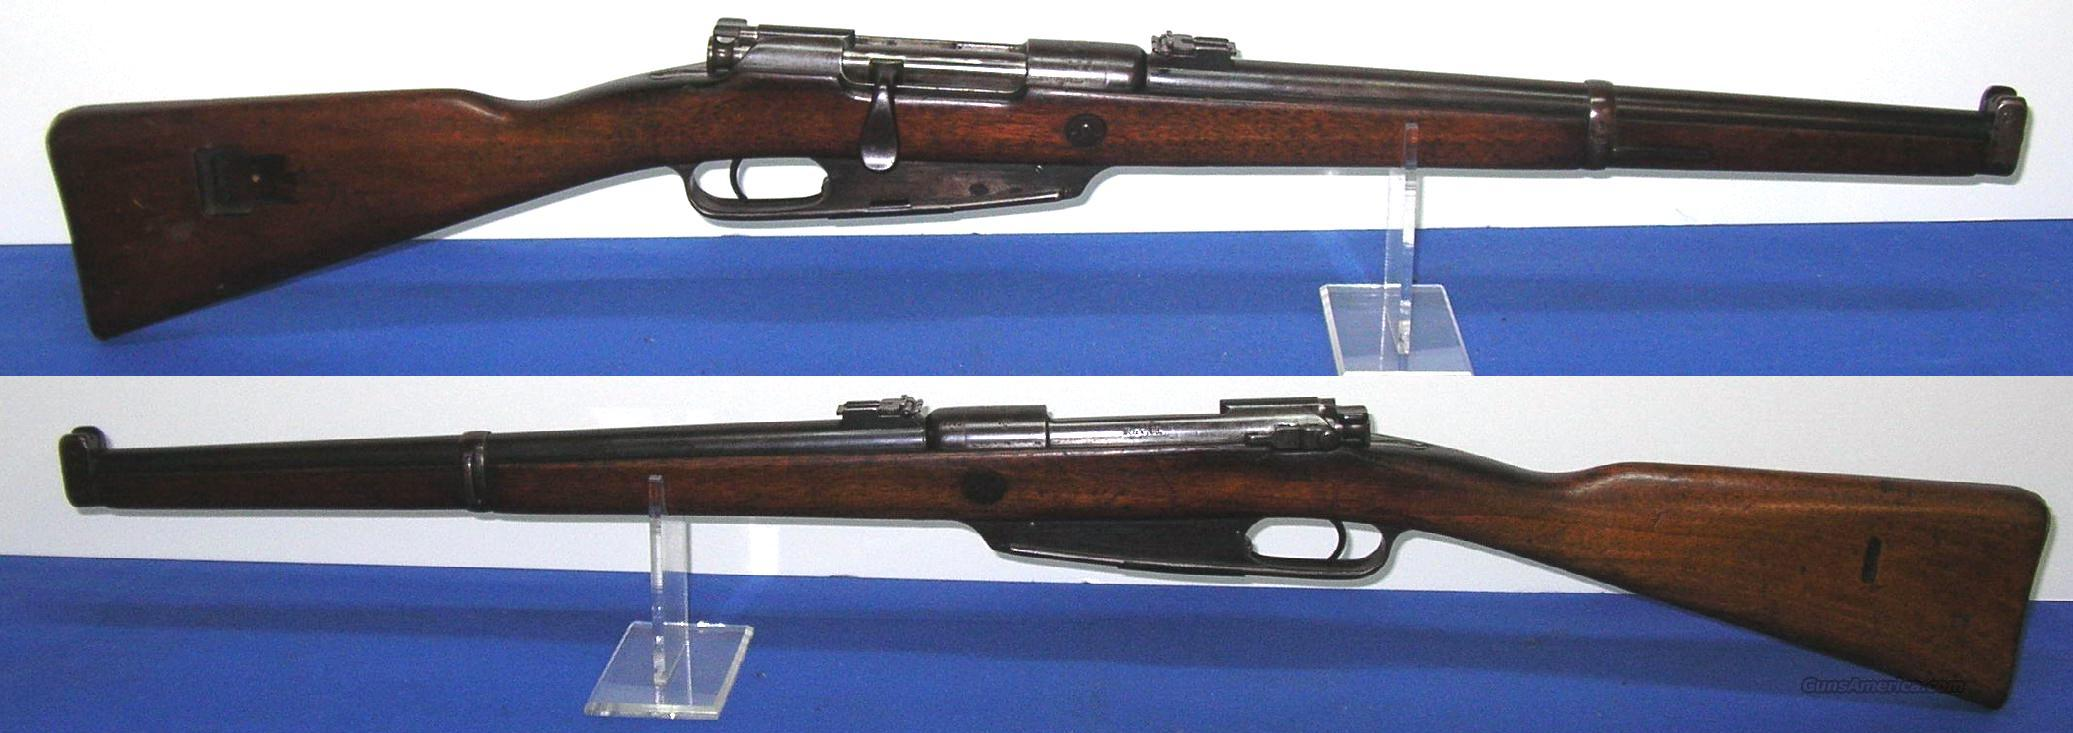 German Mannlicher Model Kar .88 Carbine   Guns > Rifles > Military Misc. Rifles Non-US > Other